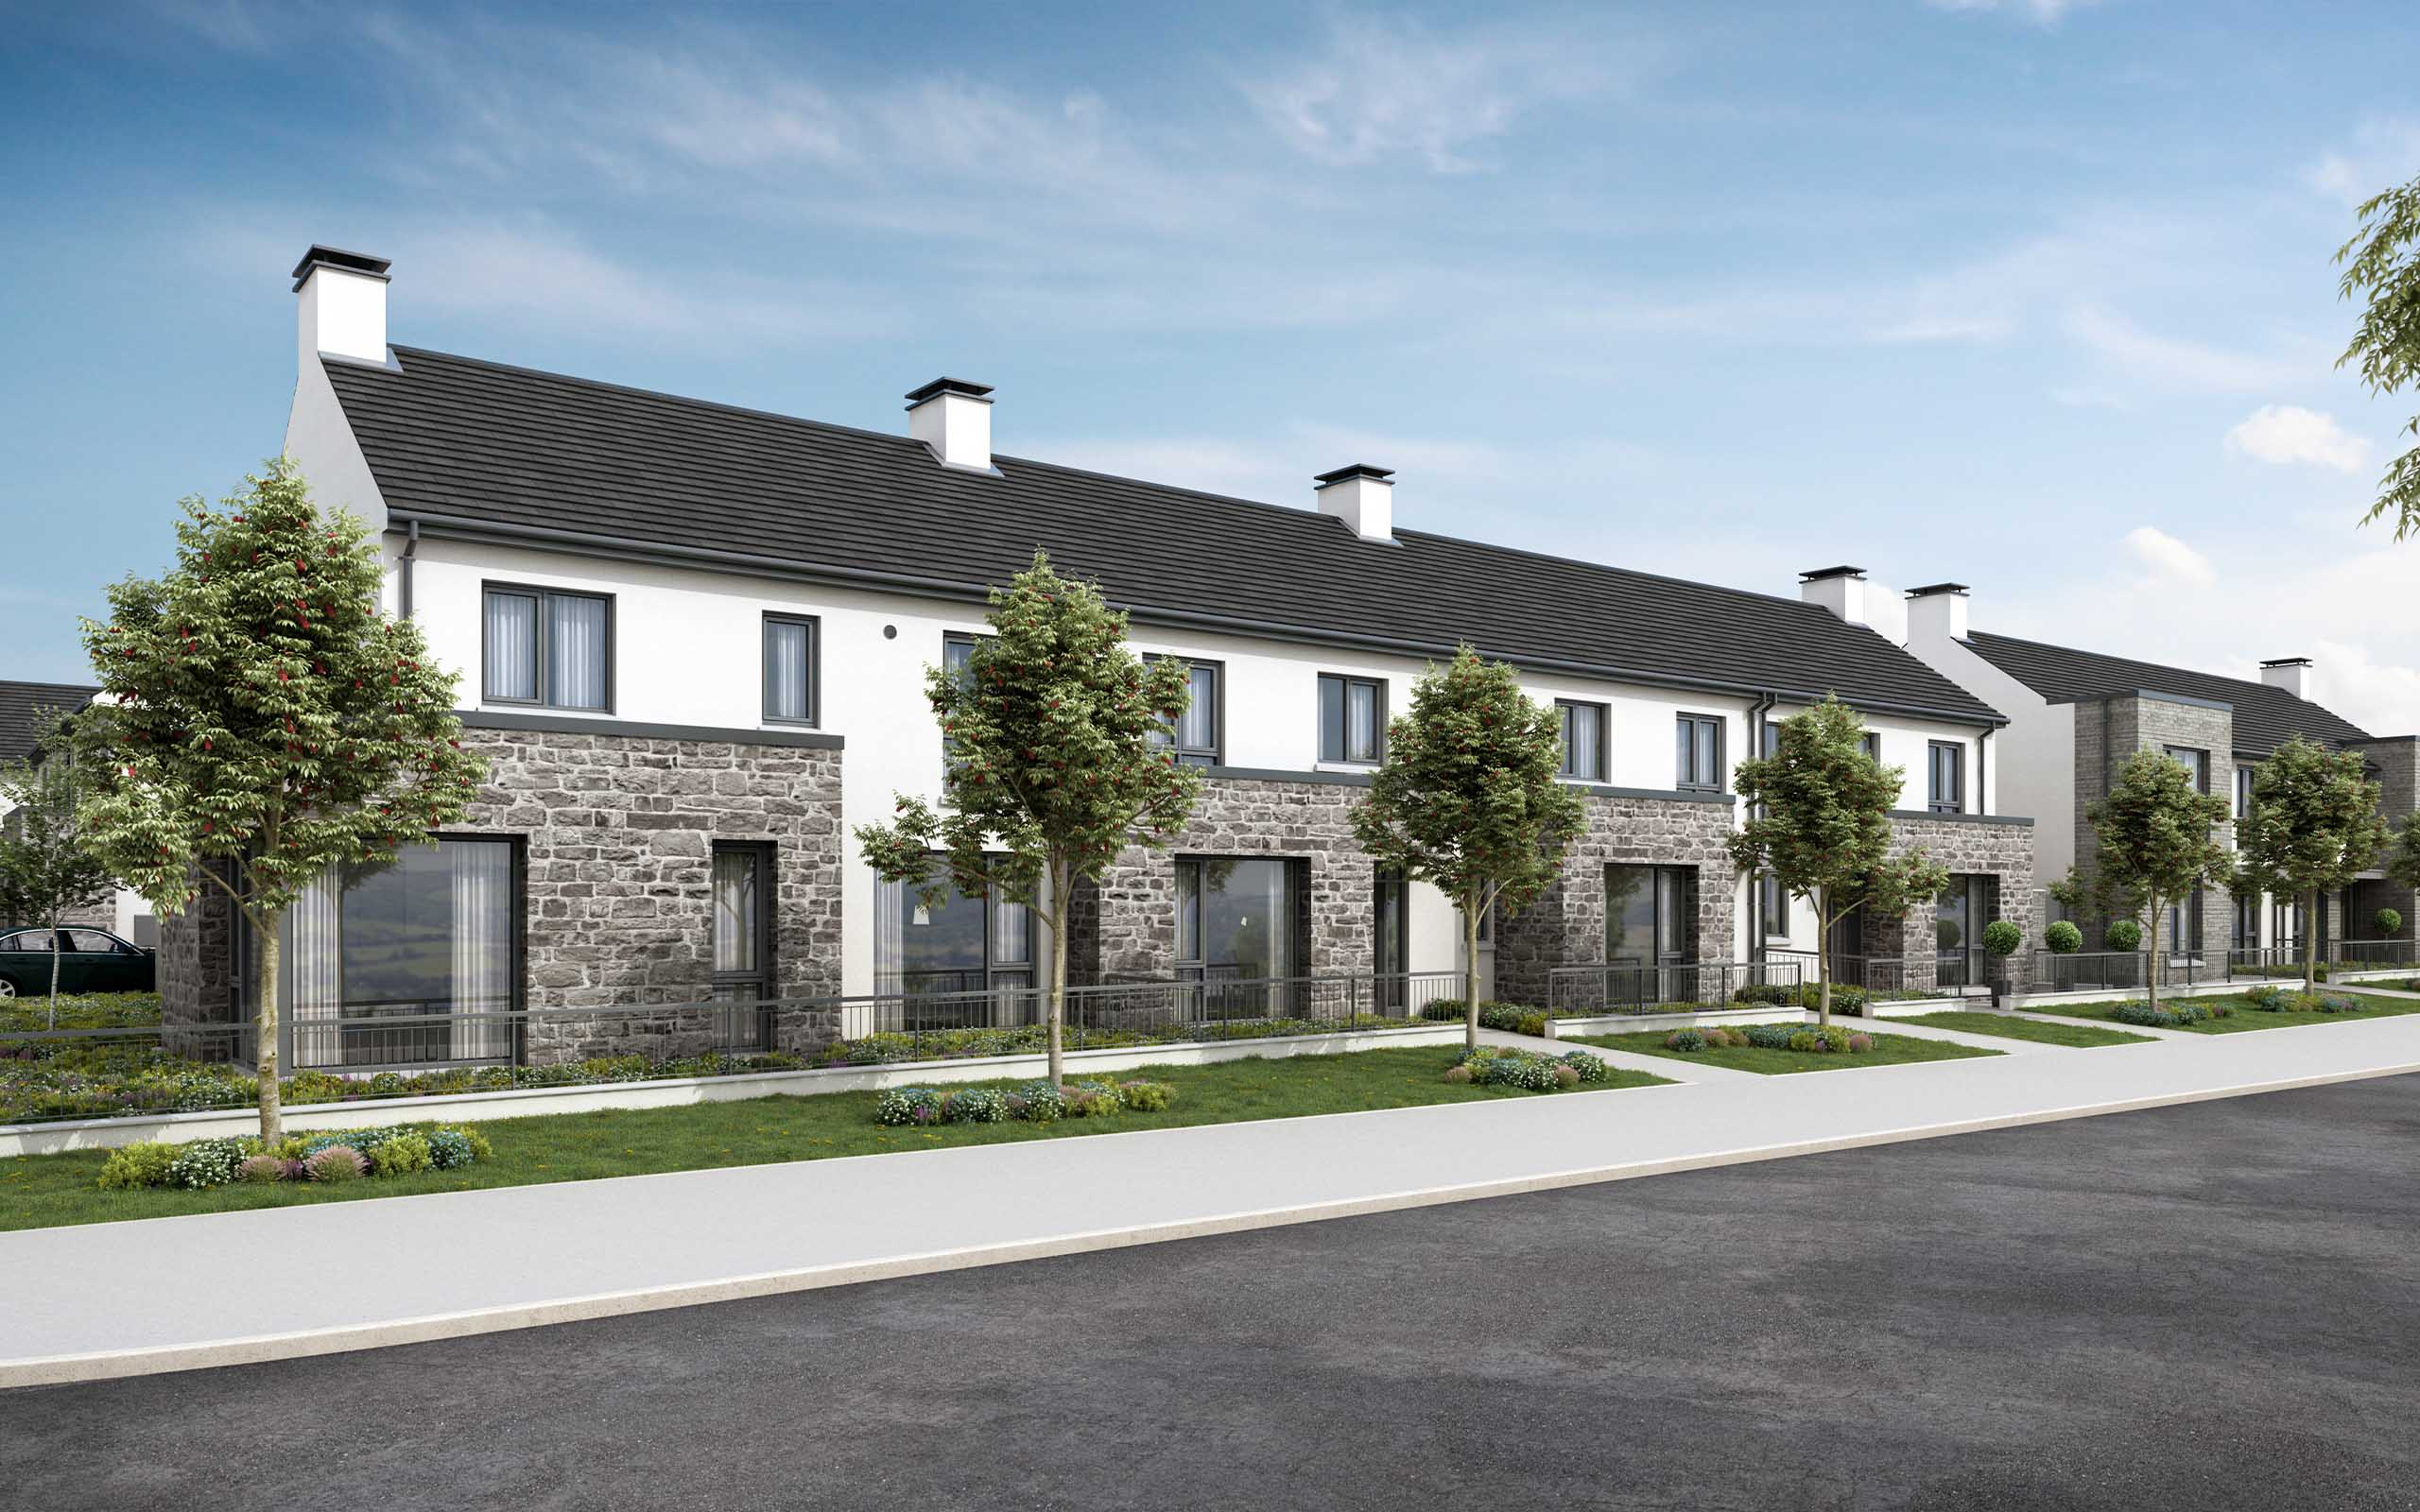 Architectural CGI-E of Oldtown Woods residential development in Celbridge, Co. Kildare.